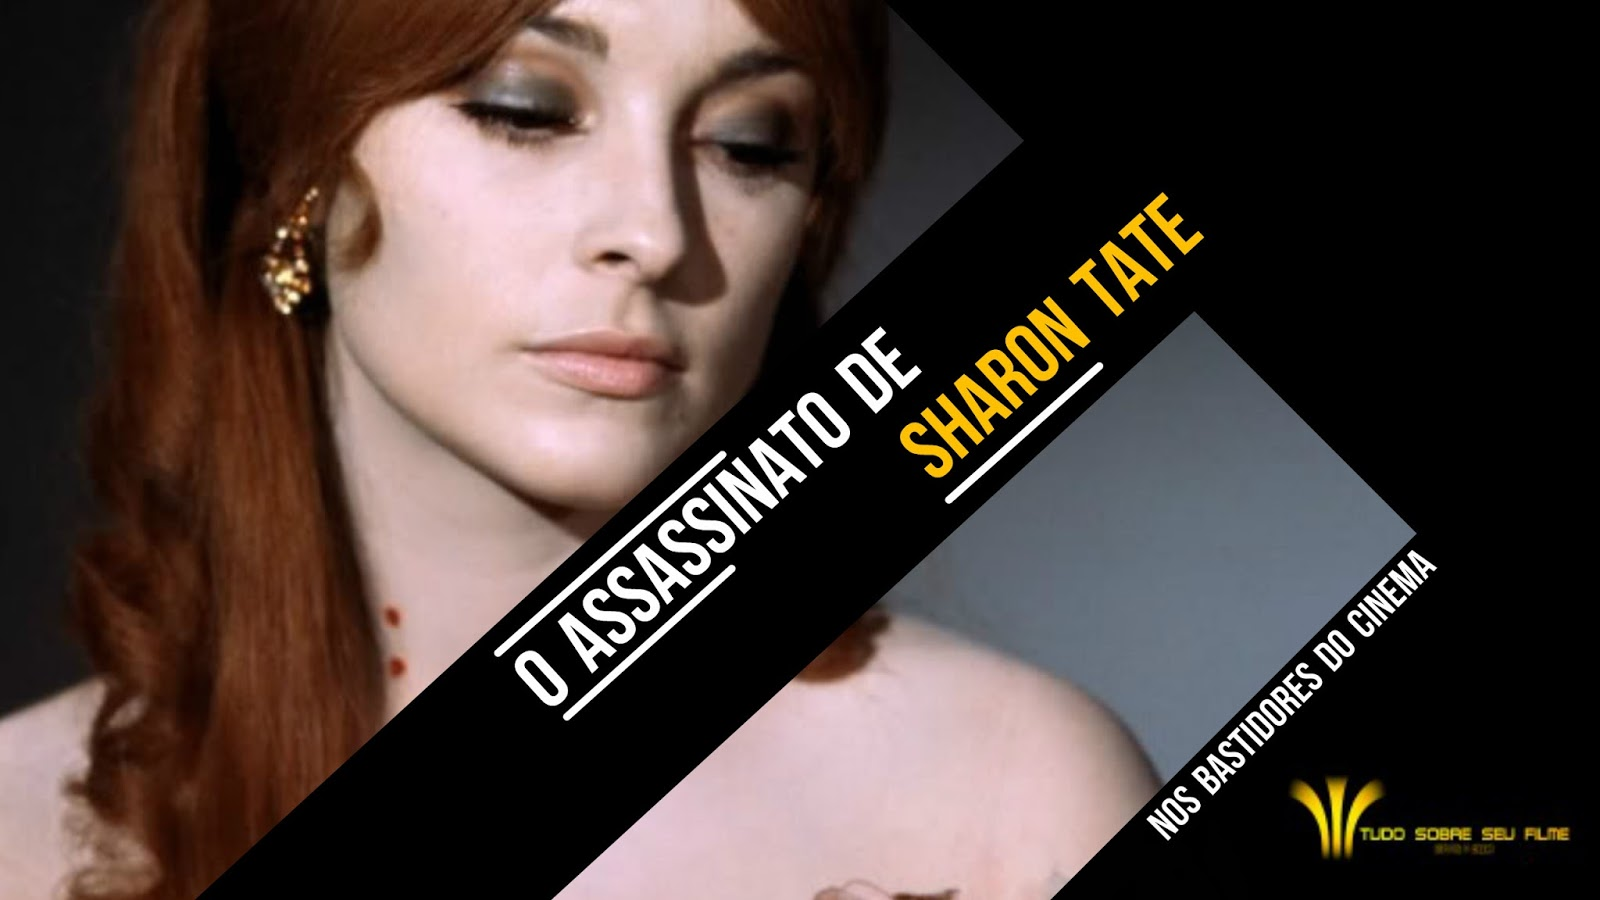 o-assassinato-de-sharon-tate